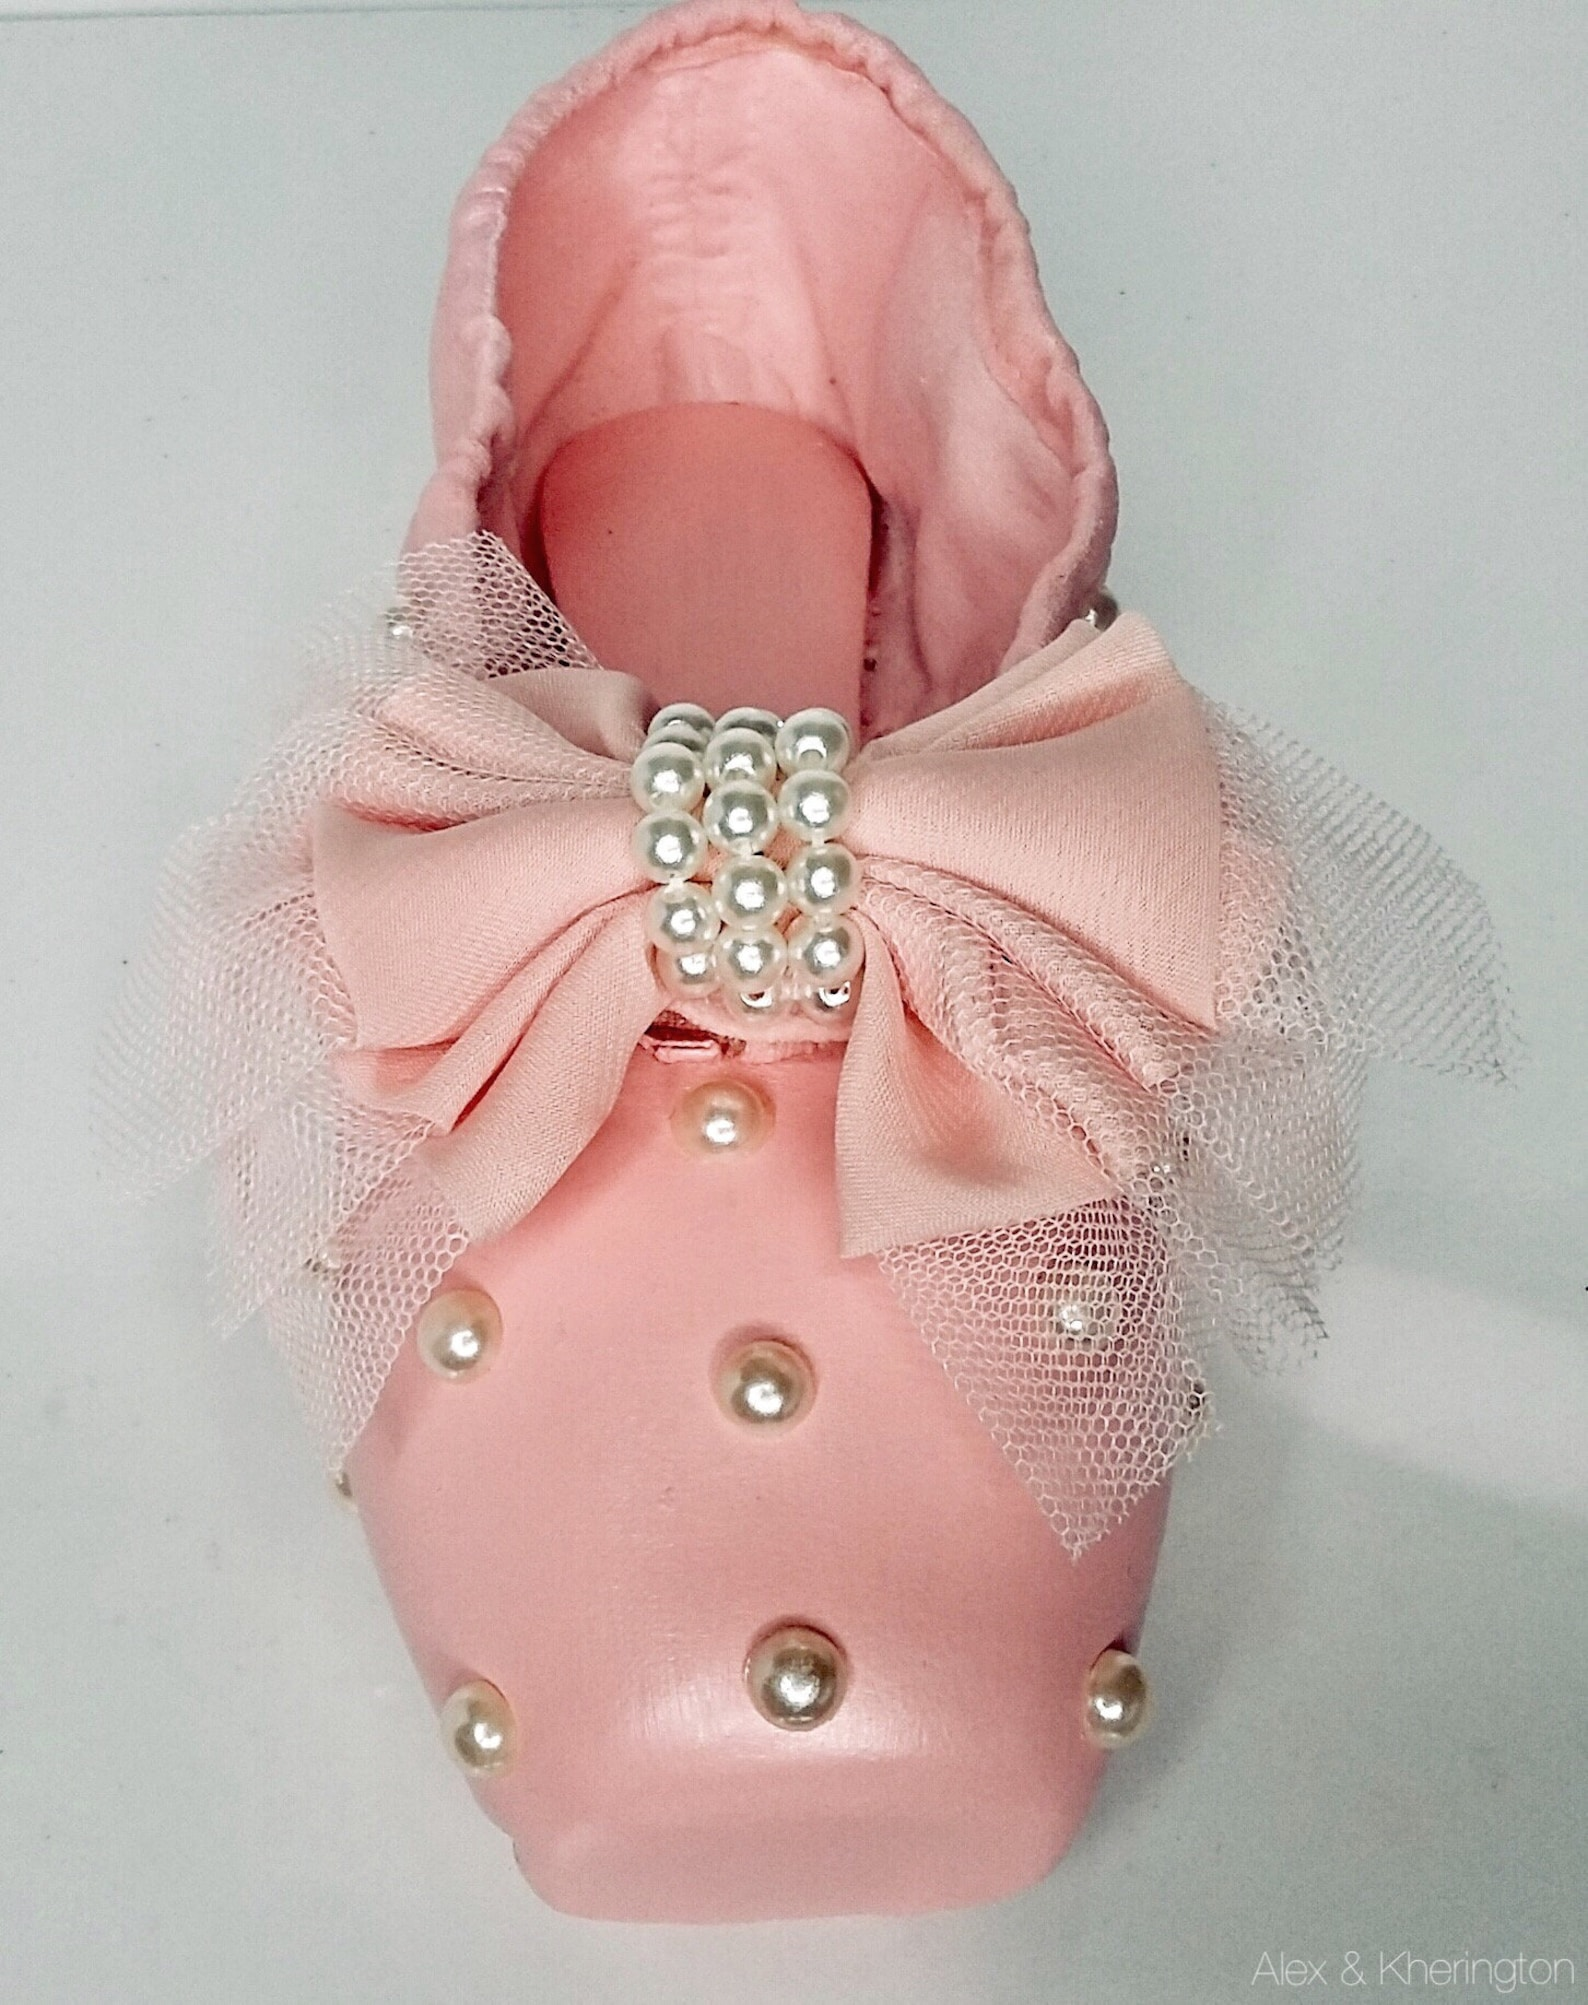 alex & kherington ballet shoe design, pointe shoes, ballet shoes